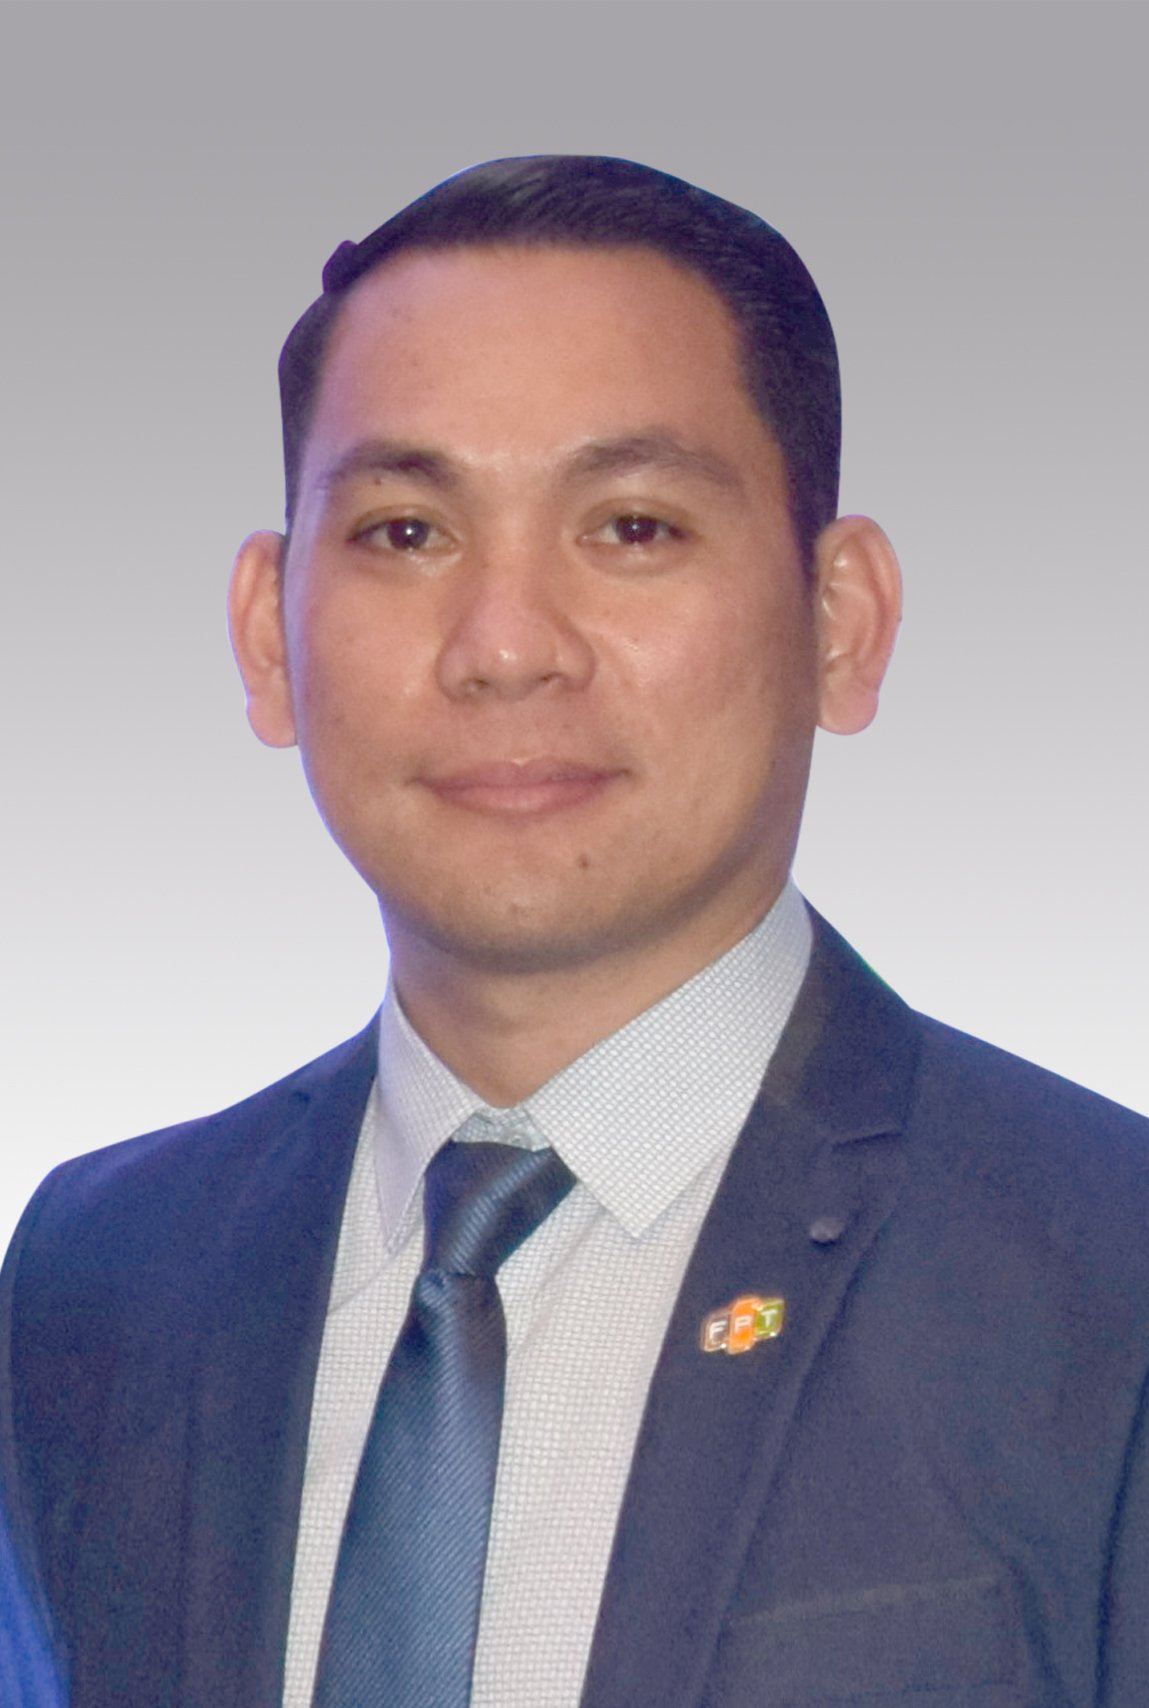 Managing Director at FPT Software Philippines